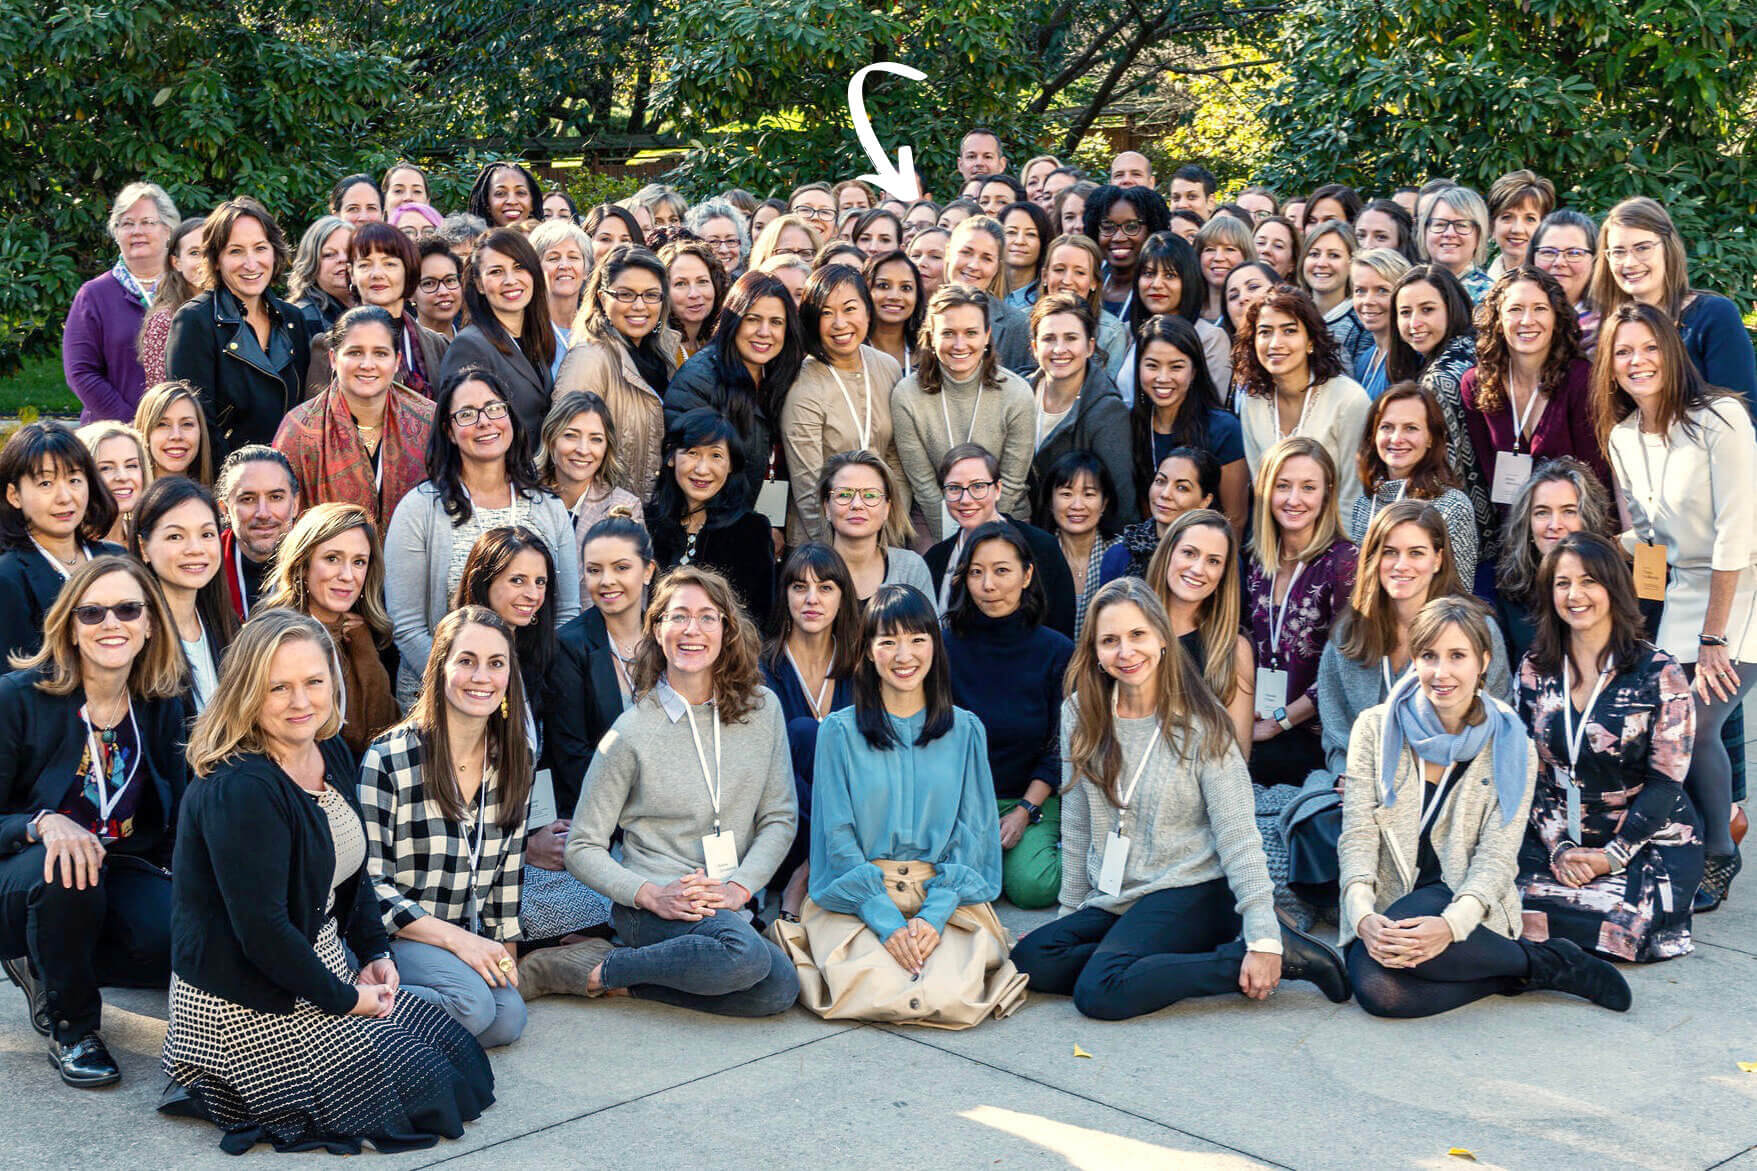 Marie Kondo In Group Photo During The KonMari Consultant Certification Course in New York, November 2019